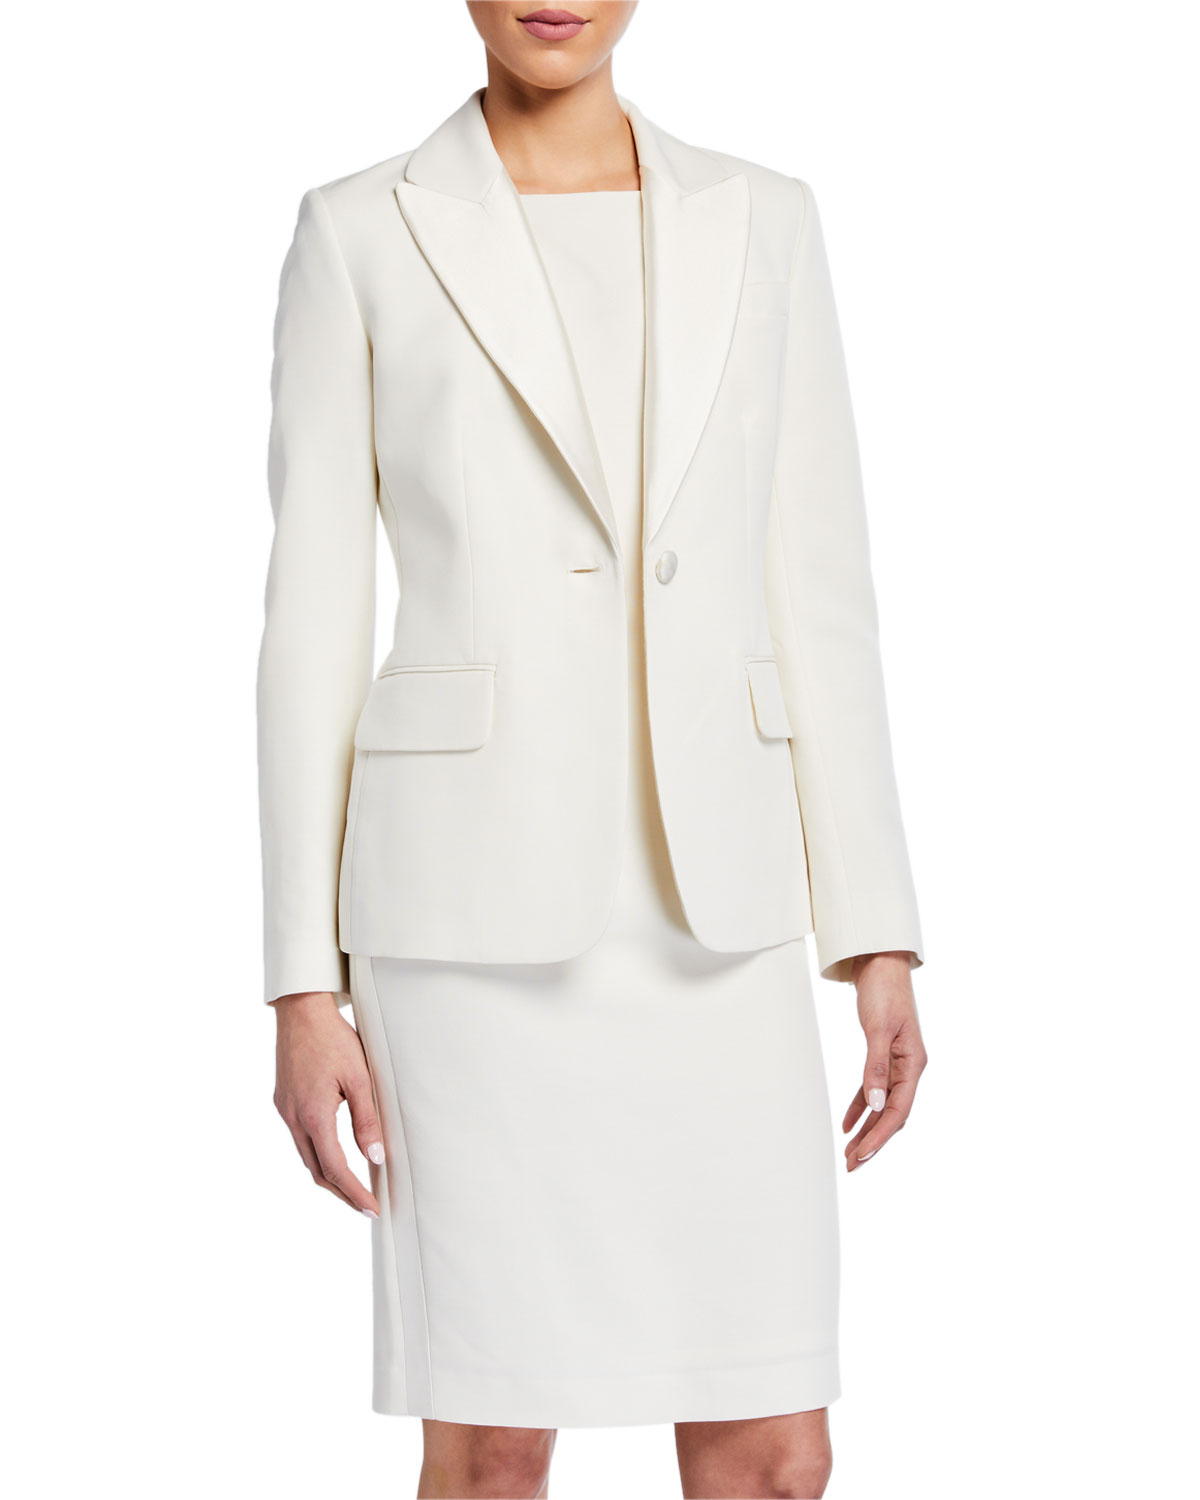 St. John Collection Tuxedo Faille Jacket with Mikado Lapel and Matching Items & Matching Items